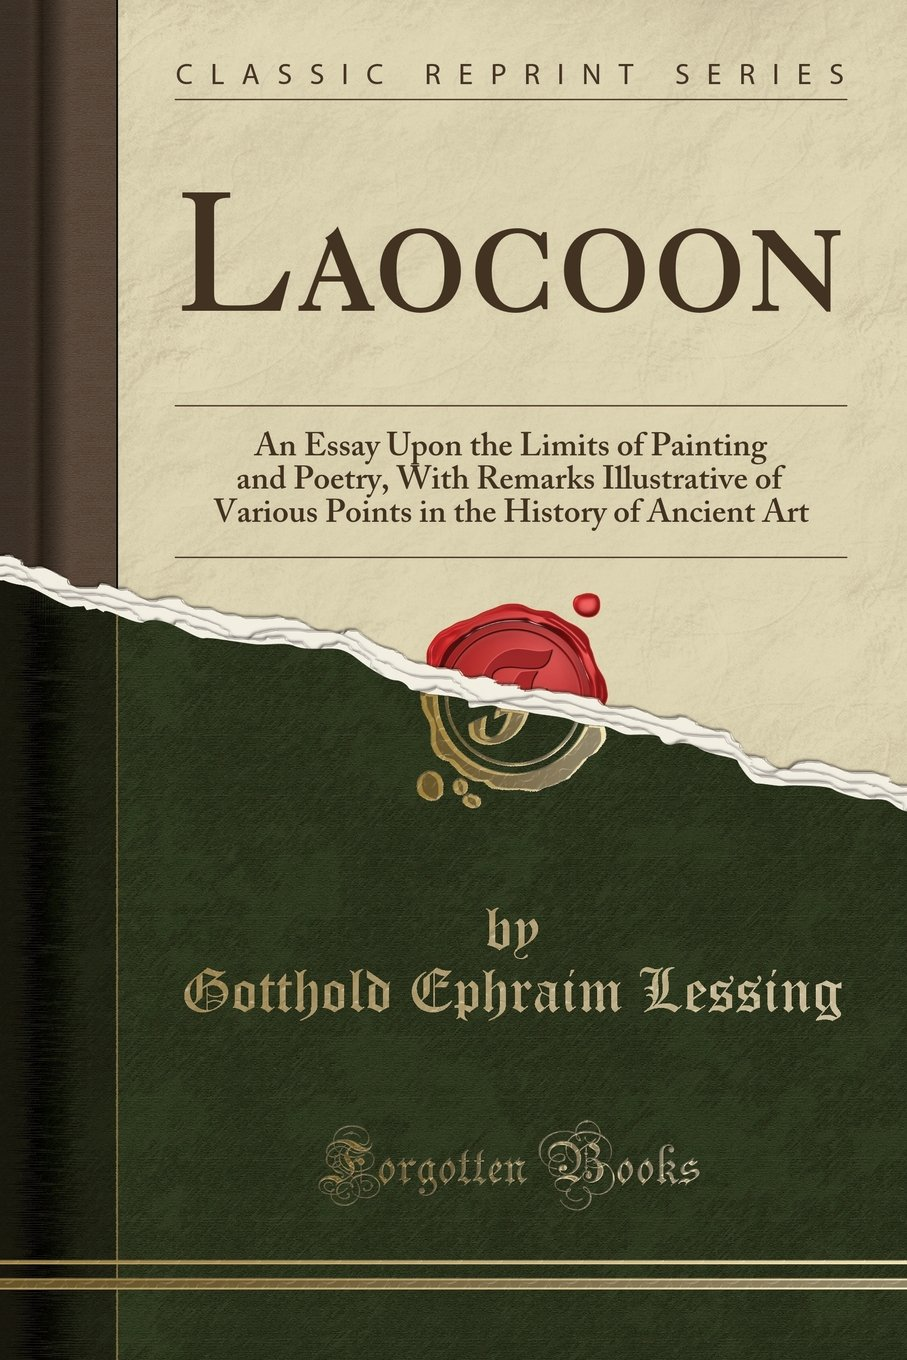 Download Laocoon: An Essay Upon the Limits of Painting and Poetry, With Remarks Illustrative of Various Points in the History of Ancient Art (Classic Reprint) pdf epub